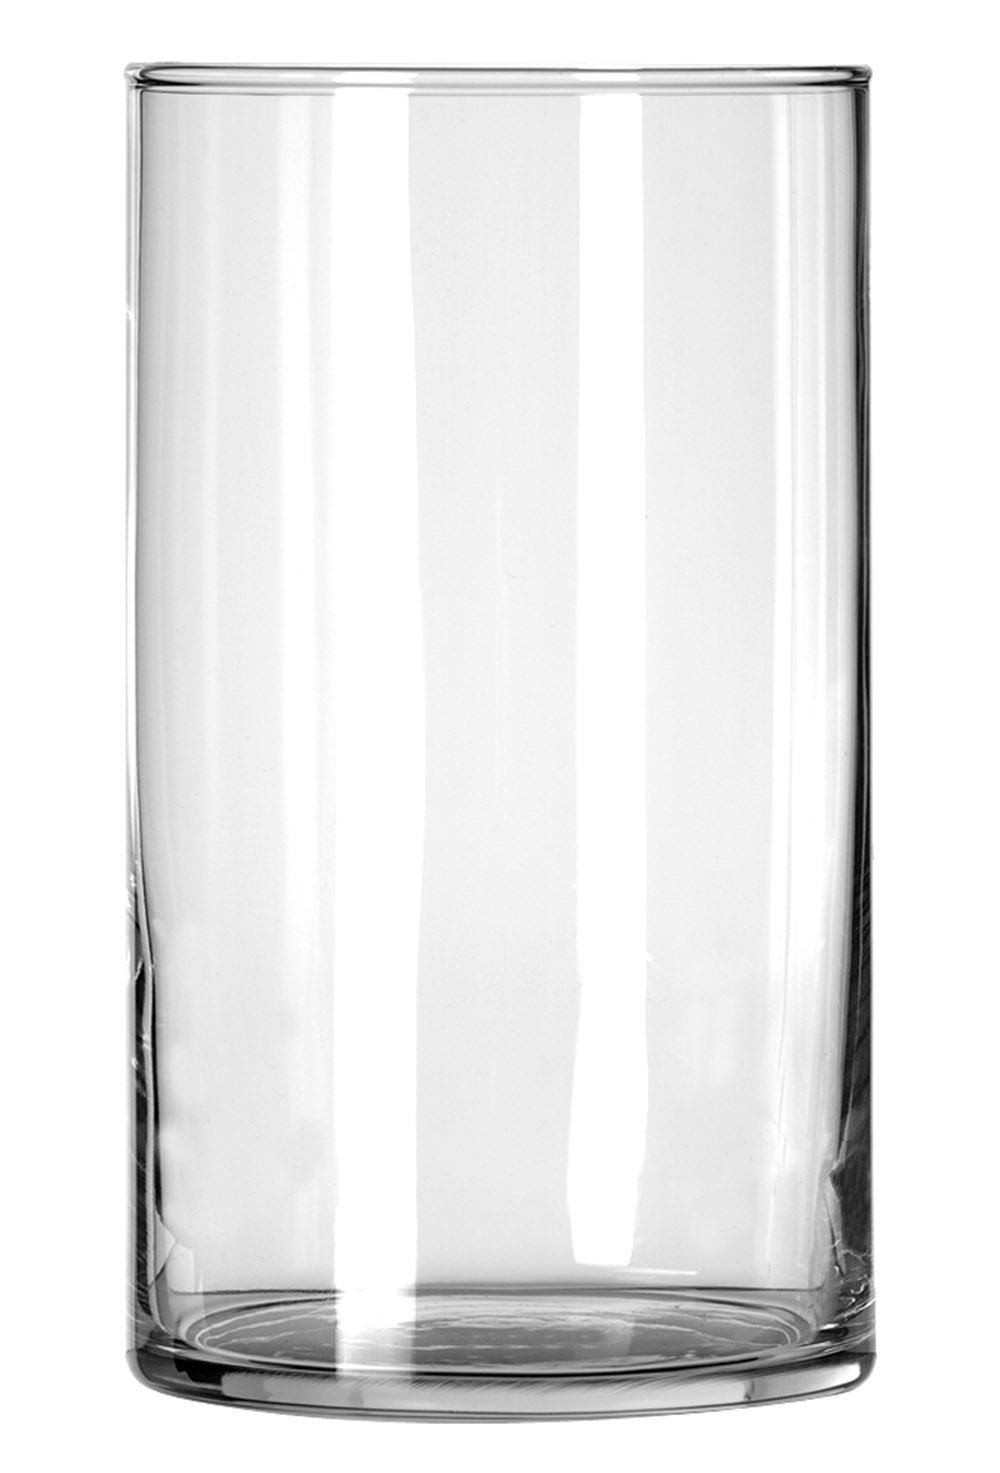 Libbey Cylinder Vase 9 Inch Clear Set Of 12 Minimalist Items